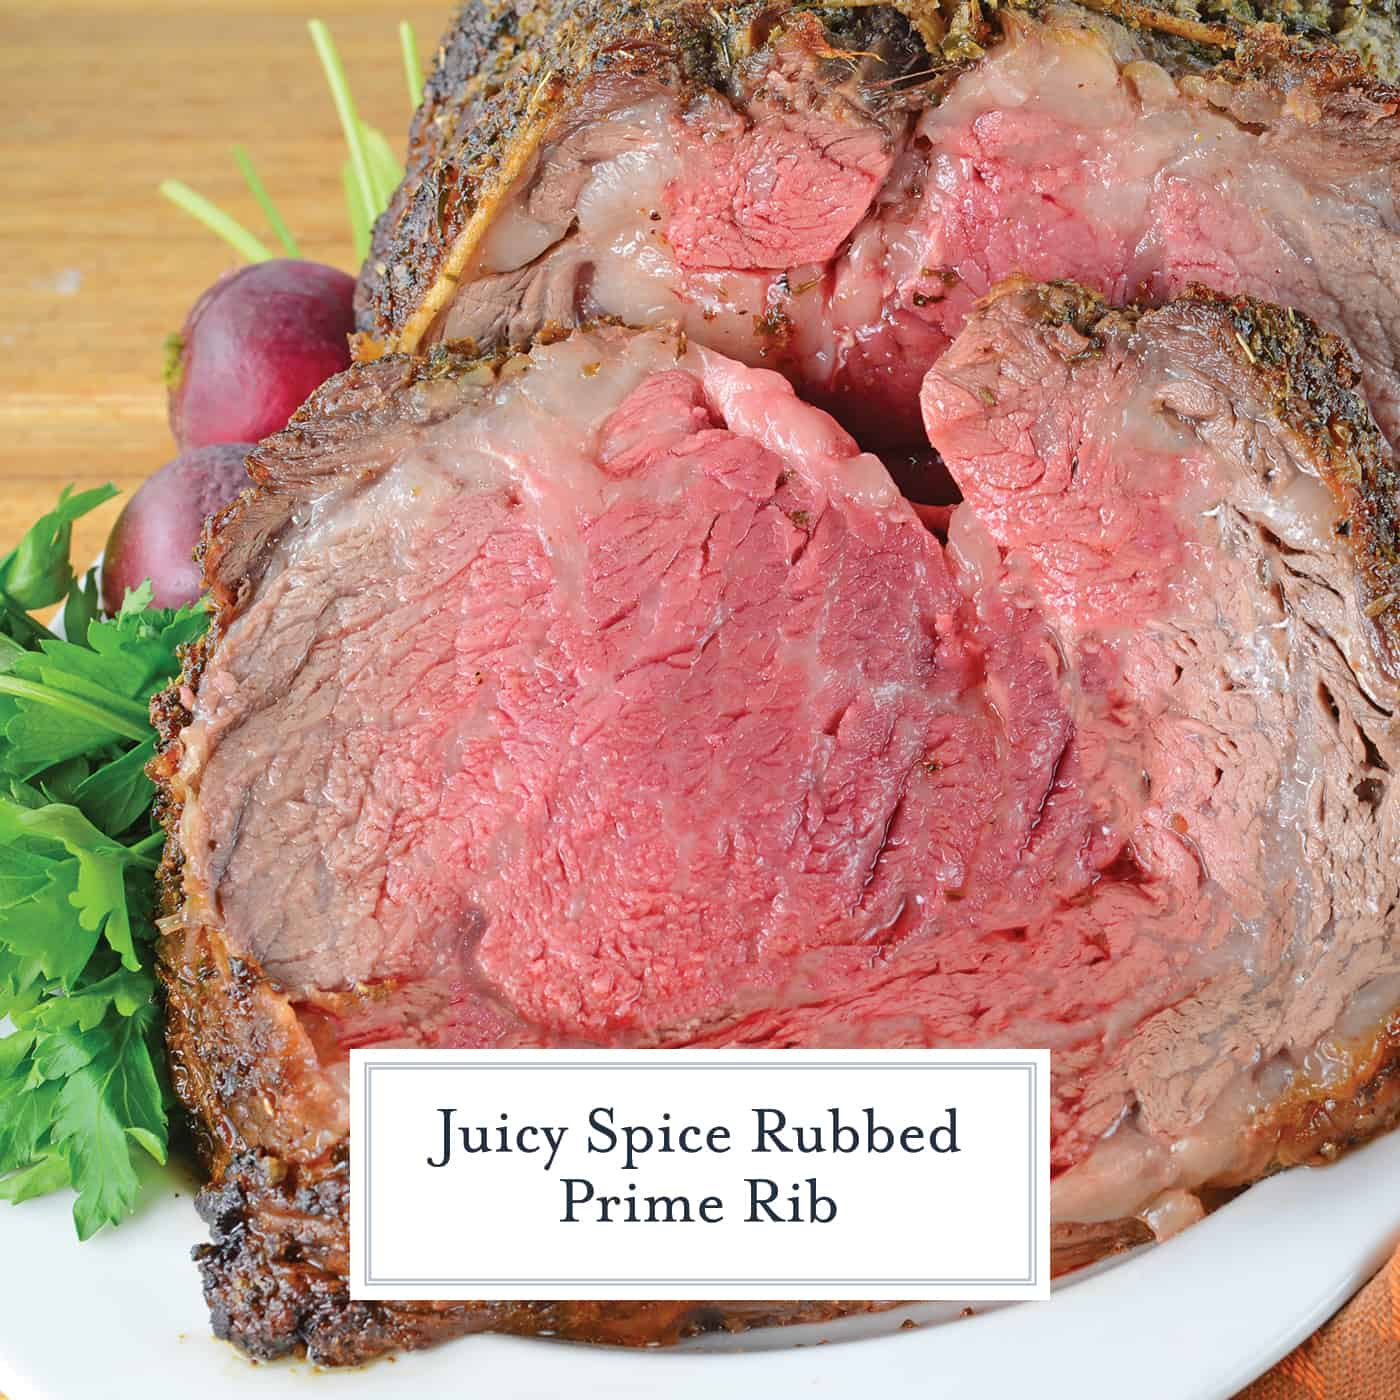 Prime Rib, or rib roast, is the king of all holiday meals. Studded with garlic and rubbed with spice mix to create a flavorful bark, this is the best prime rib recipe you will ever eat! #primeribrecipe #howtomakeprimerib www.savoryexperiments.com